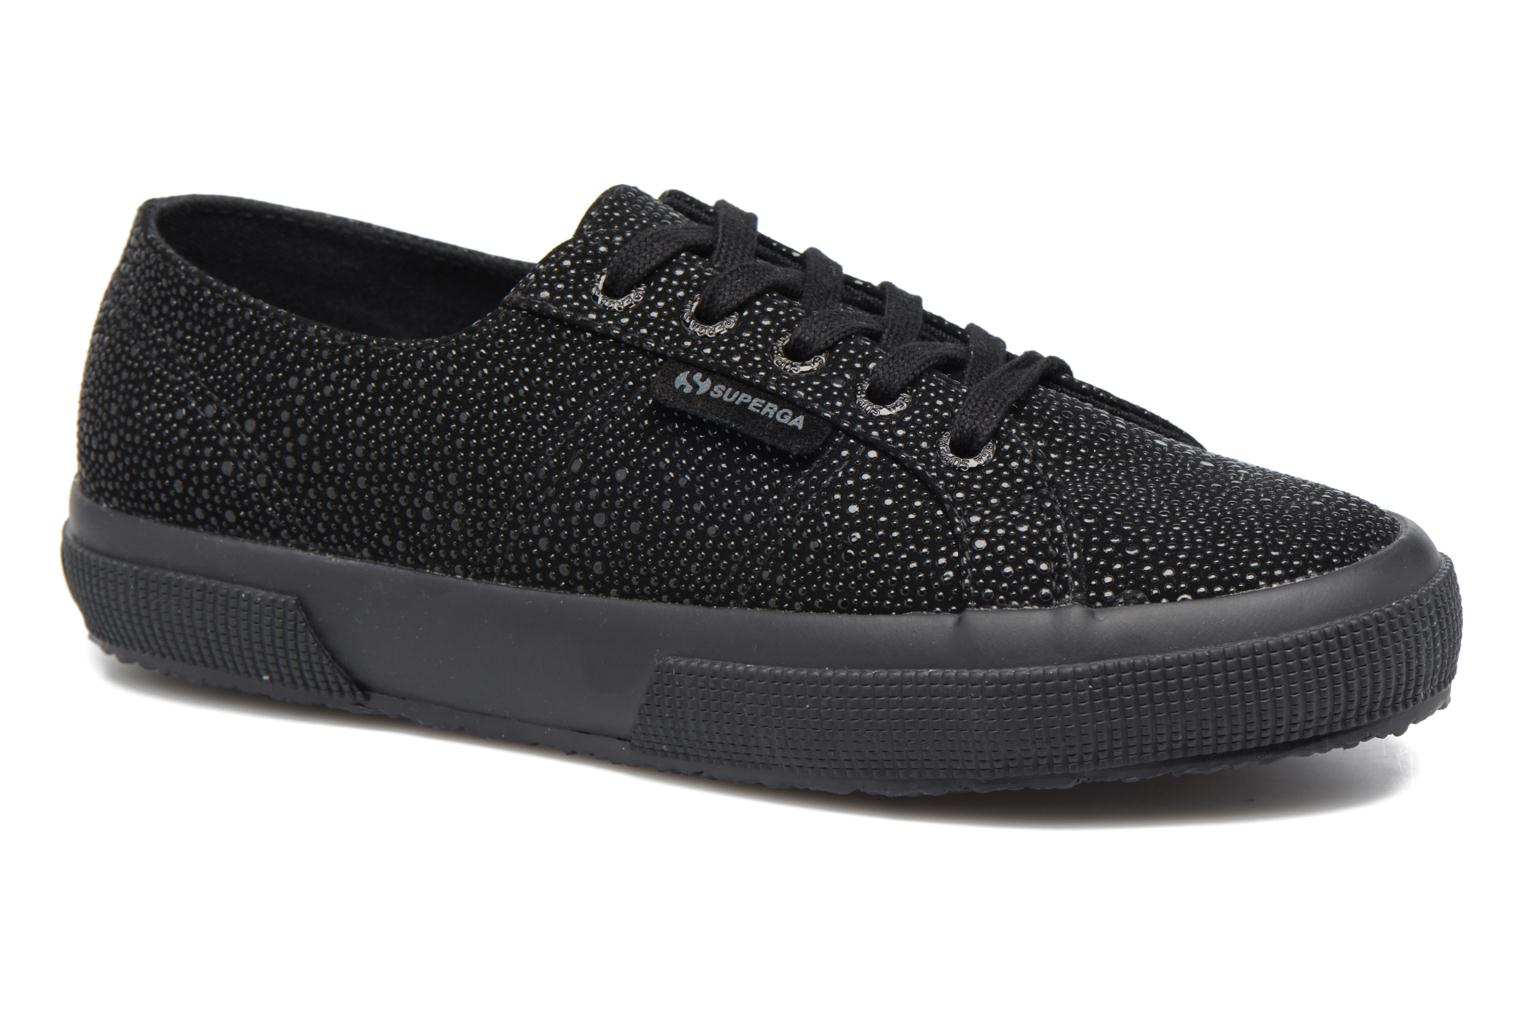 Marques Chaussure femme Superga femme 2750 Synrazza W Total Black